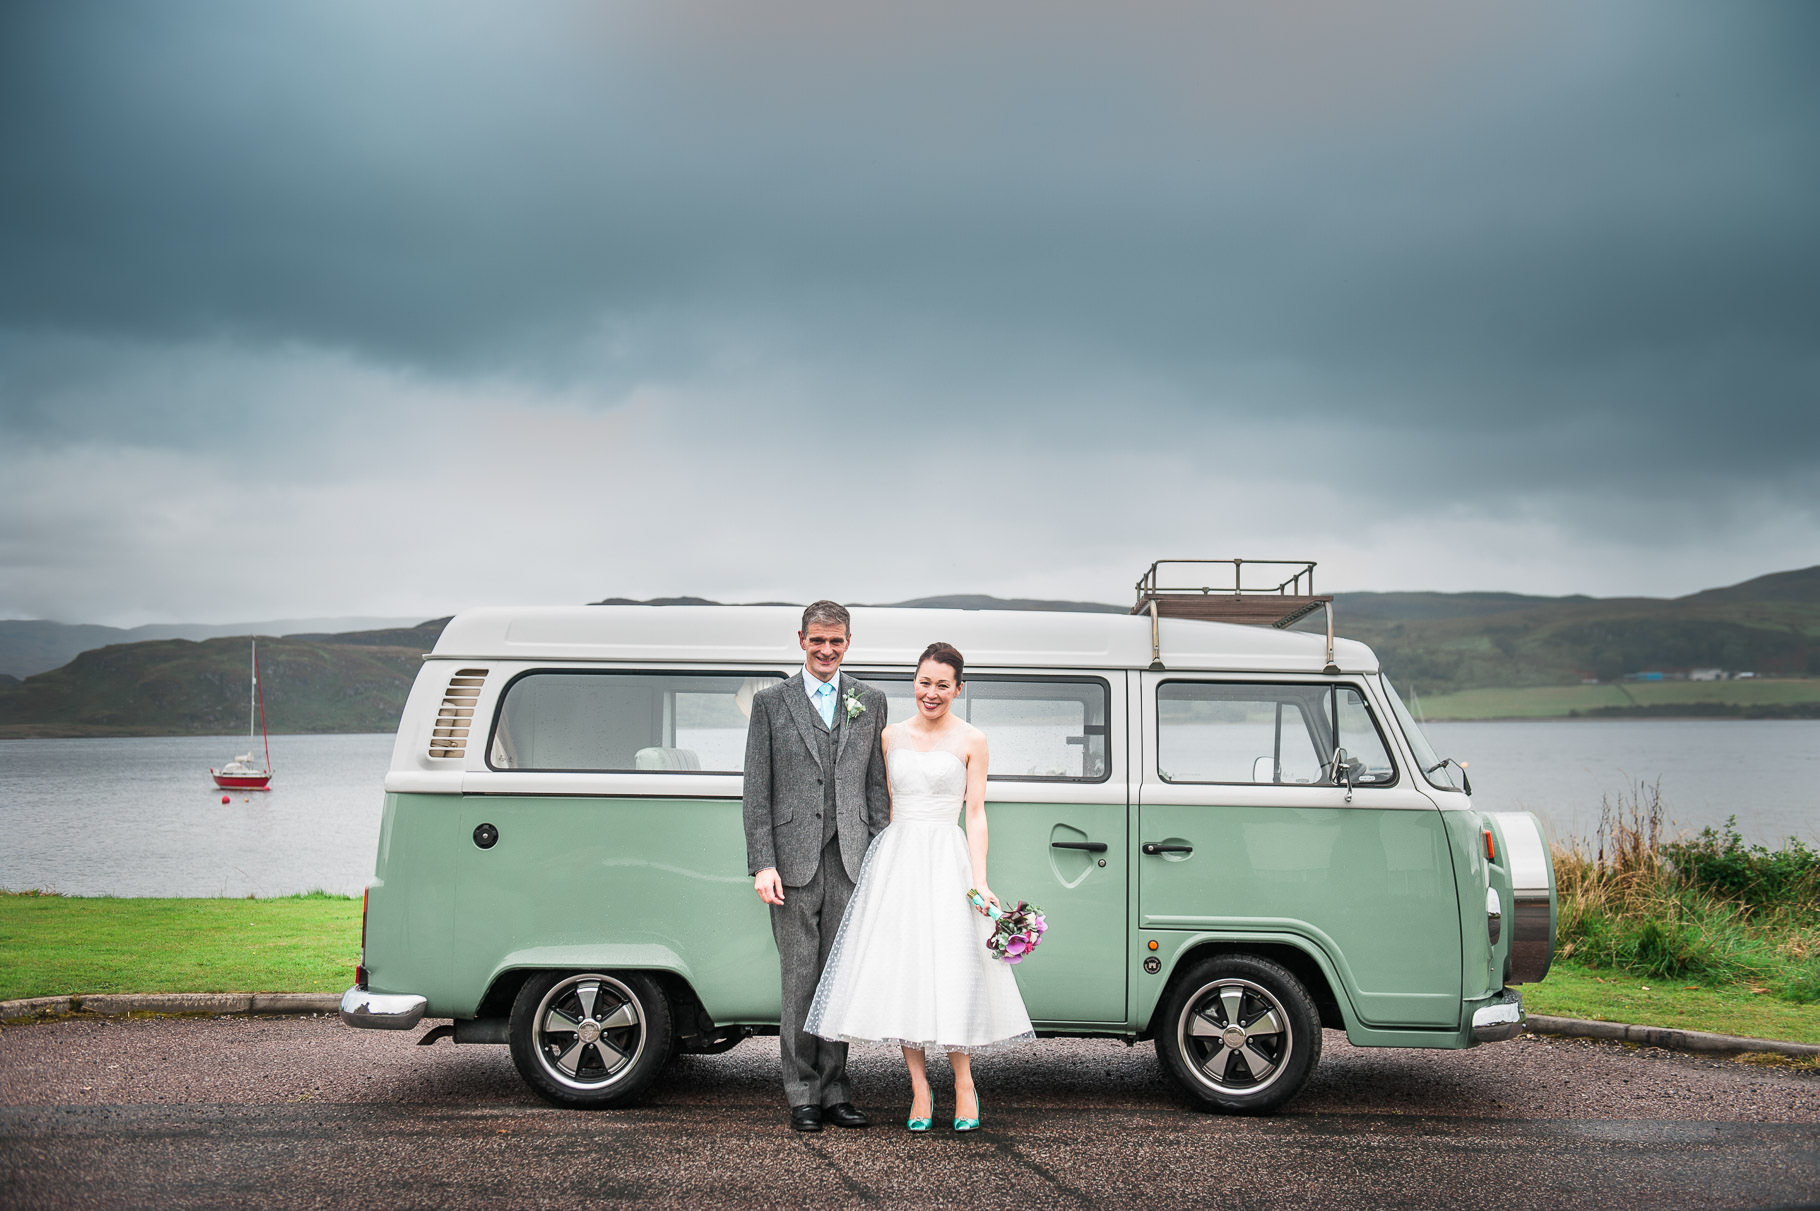 camper van wedding-tiffany wedding-chineses wedding-wedding by the sea